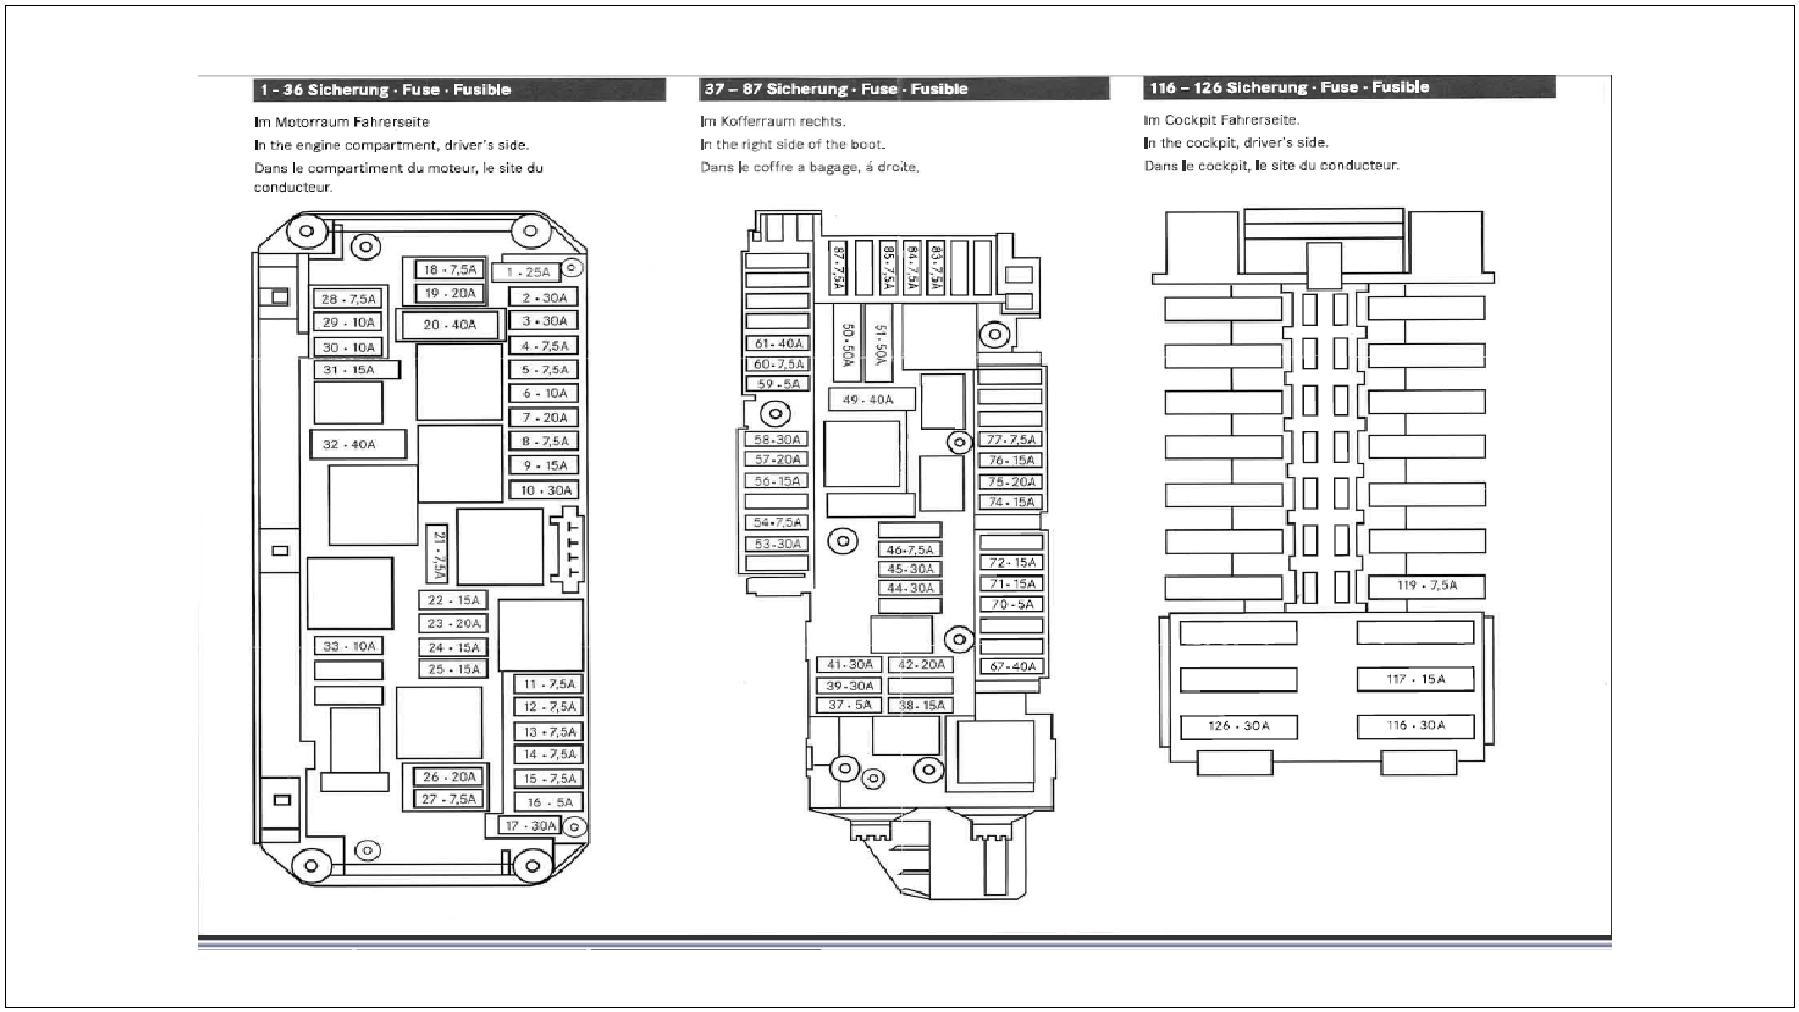 mercedes benz c class w204 fuse diagrams and commonly blown fuses mercedes c300 interior w204 fuse allocation chart (page 2)